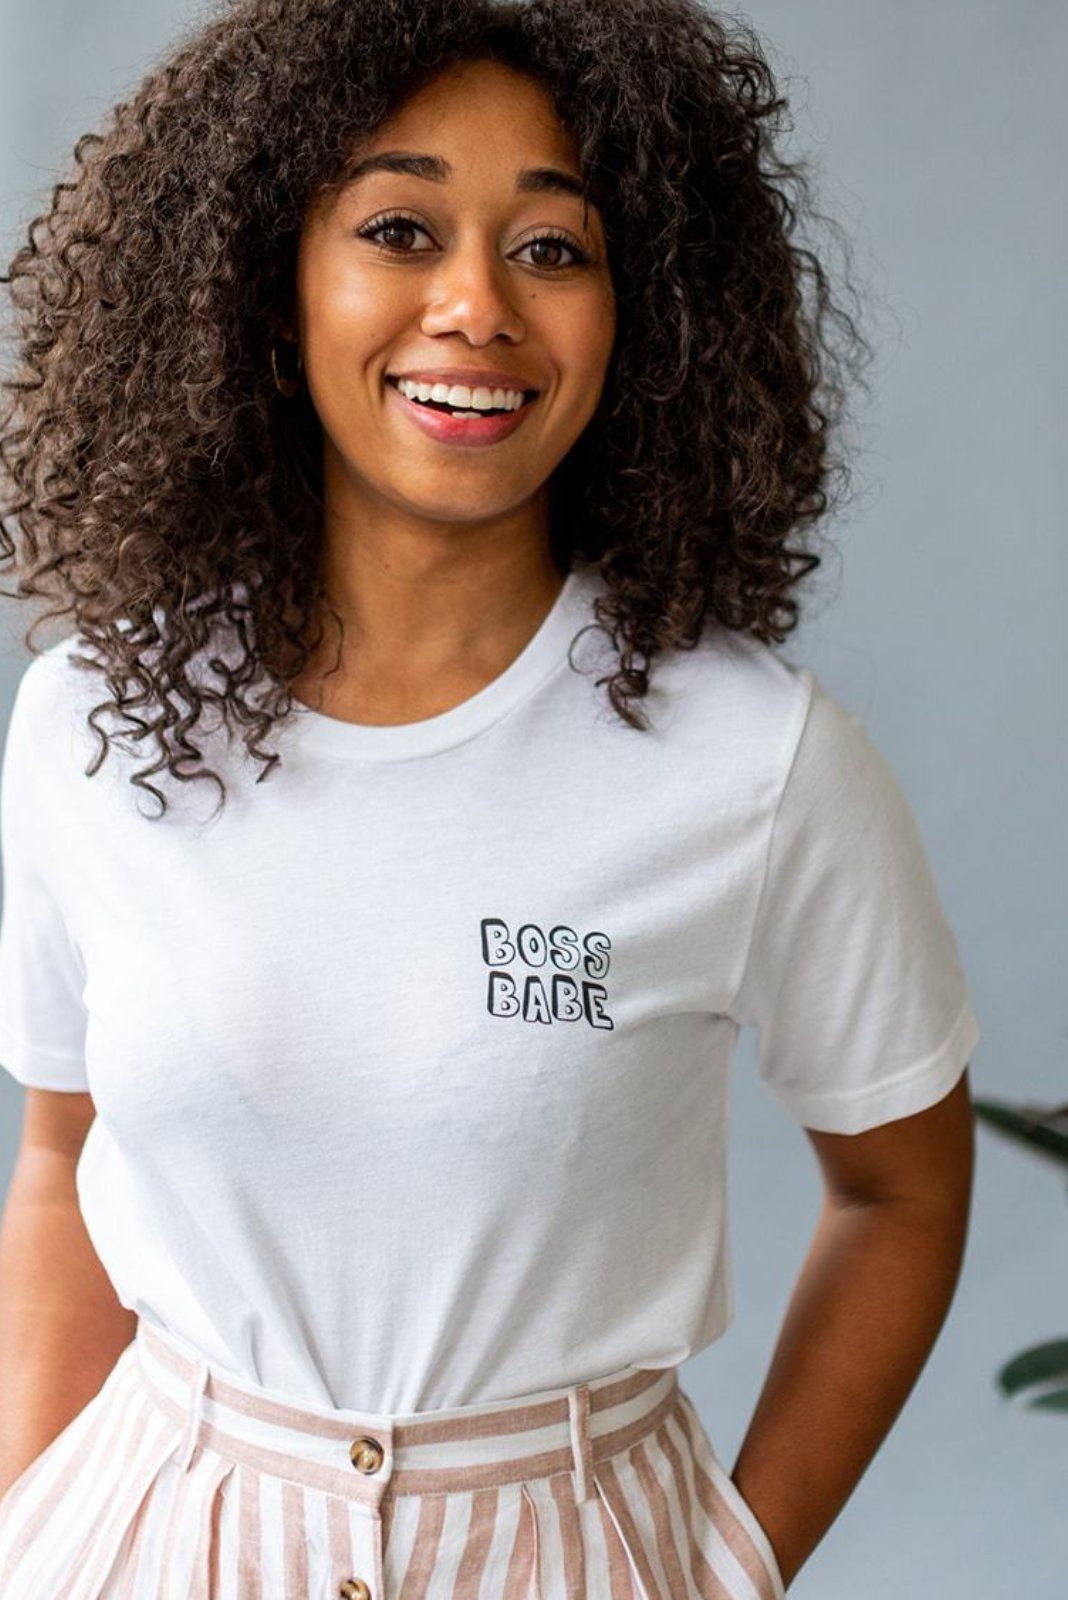 Boss Babe Graphic Tee